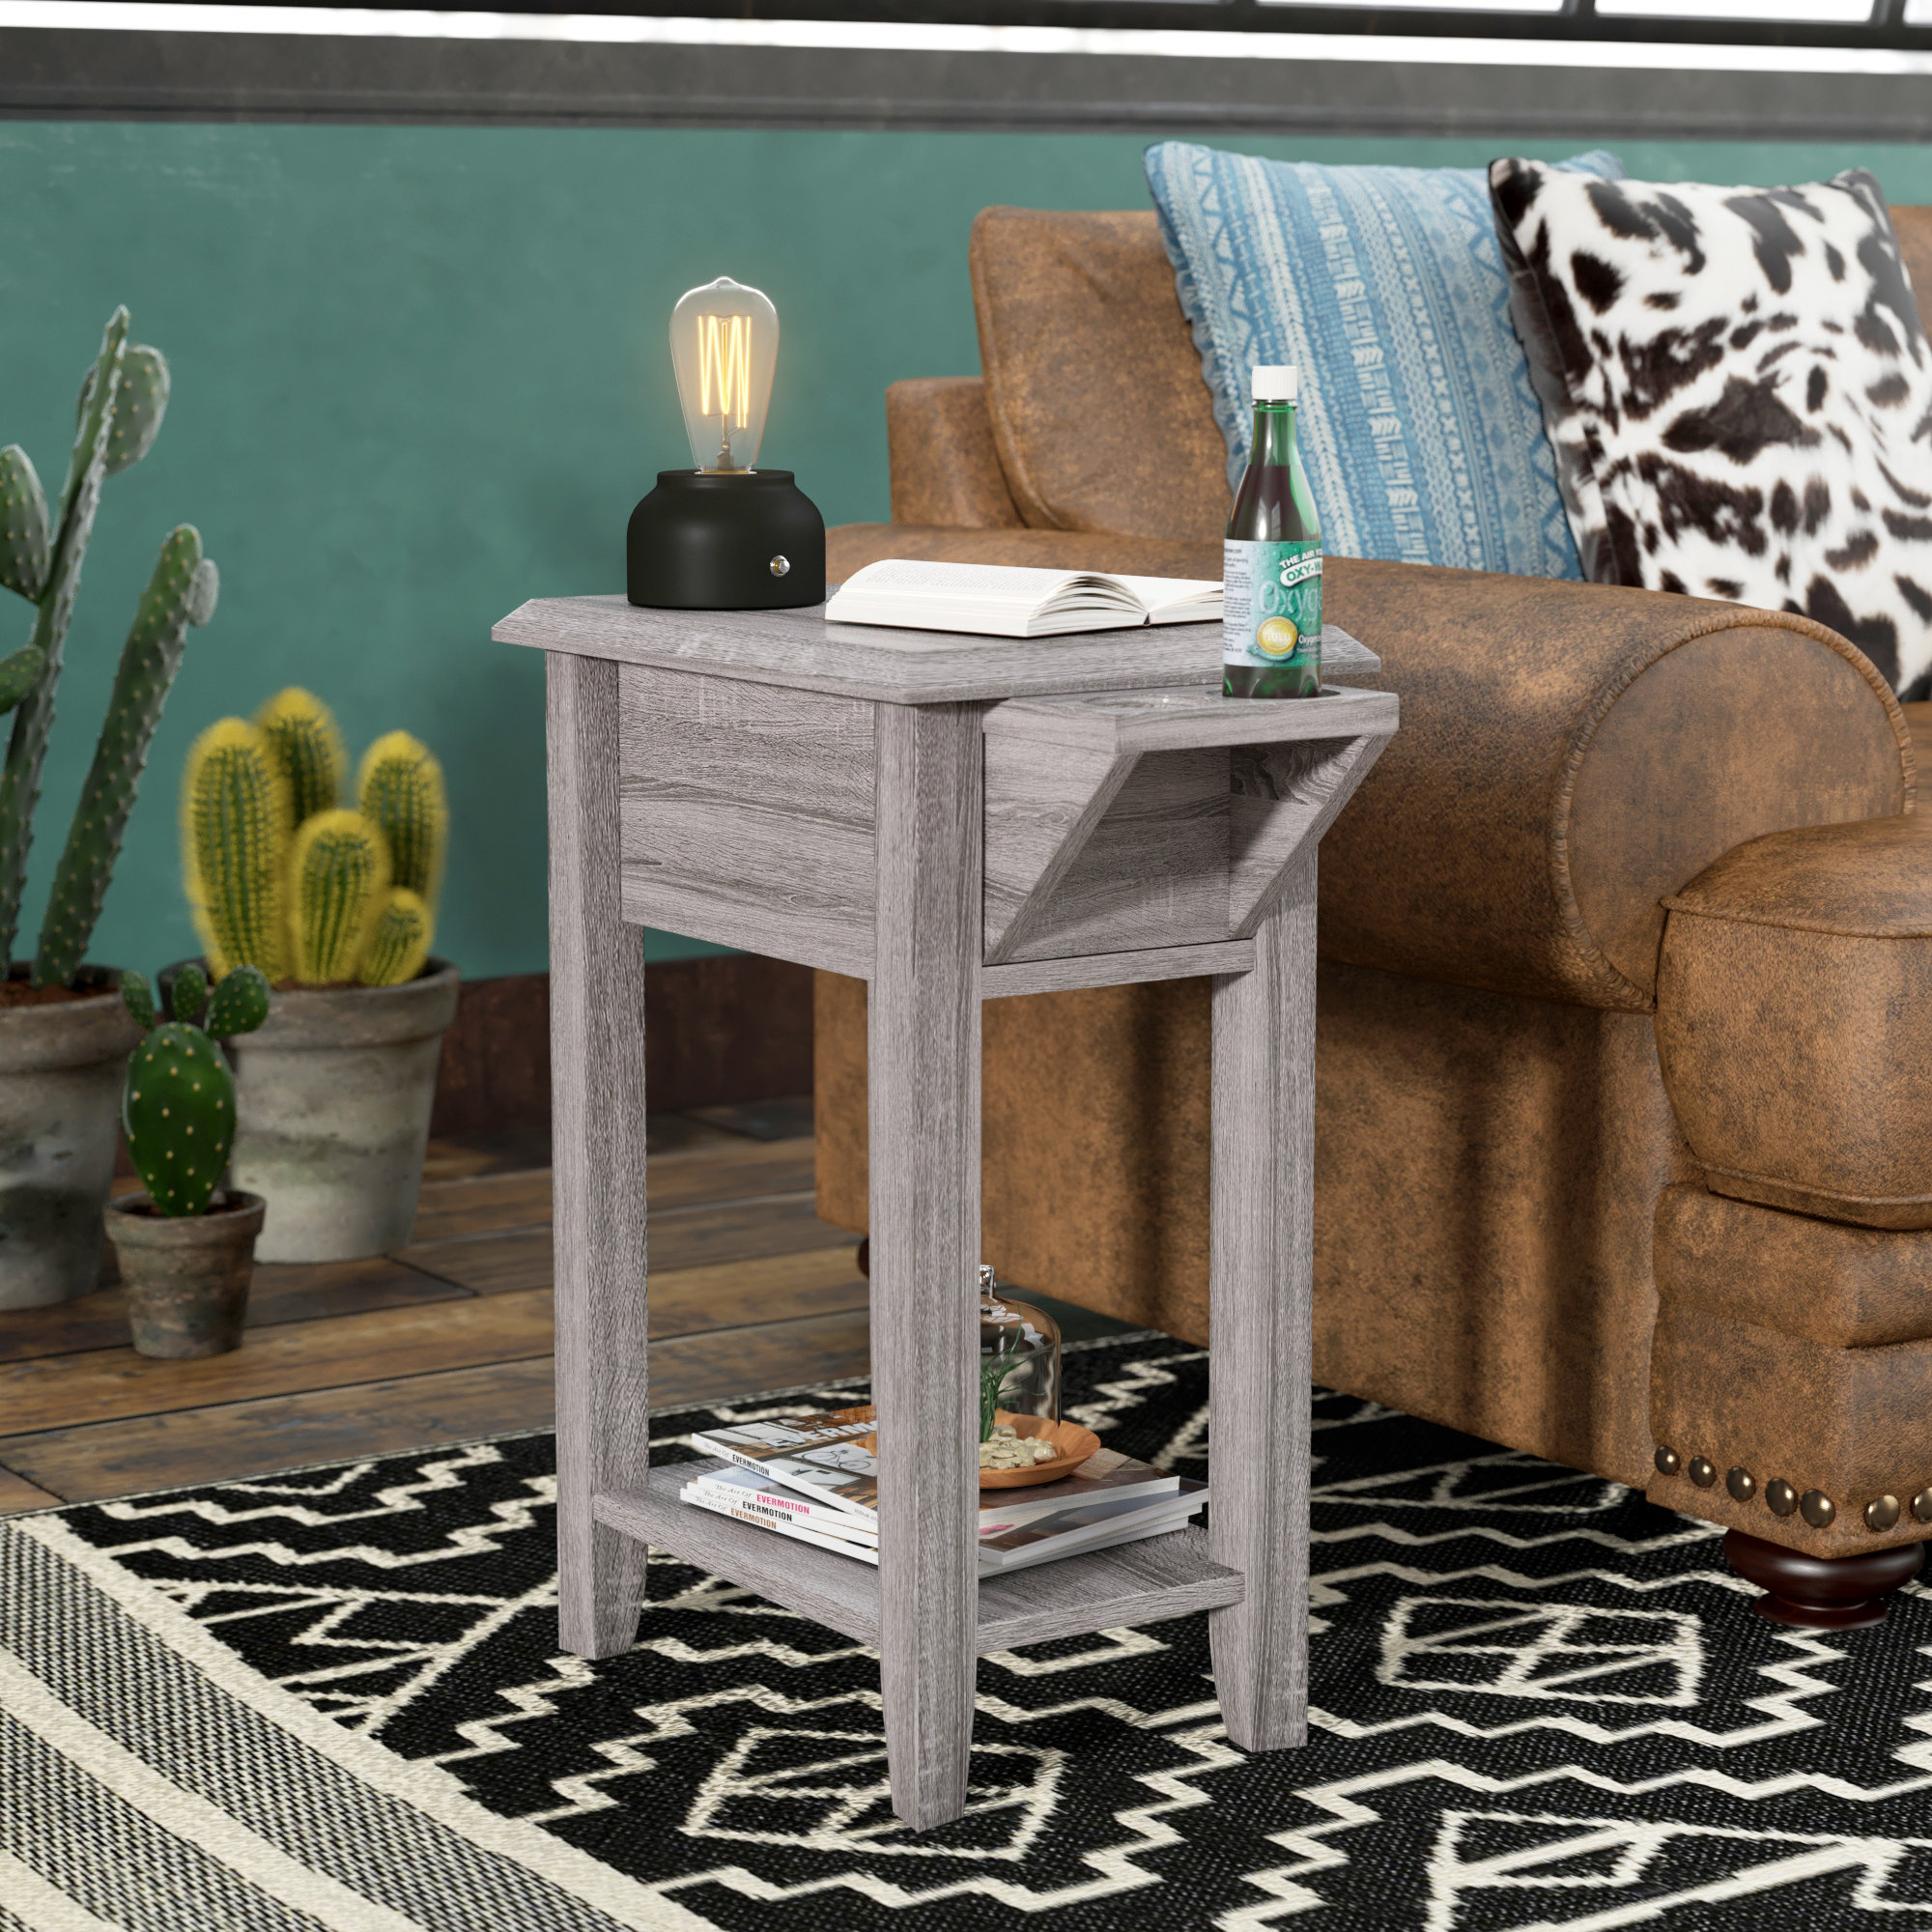 small end tables you love cuevas table patchen accent quickview mahogany bedside very oak side dark blue west elm wood art bedding and curtain sets marilyn monroe bedroom decor